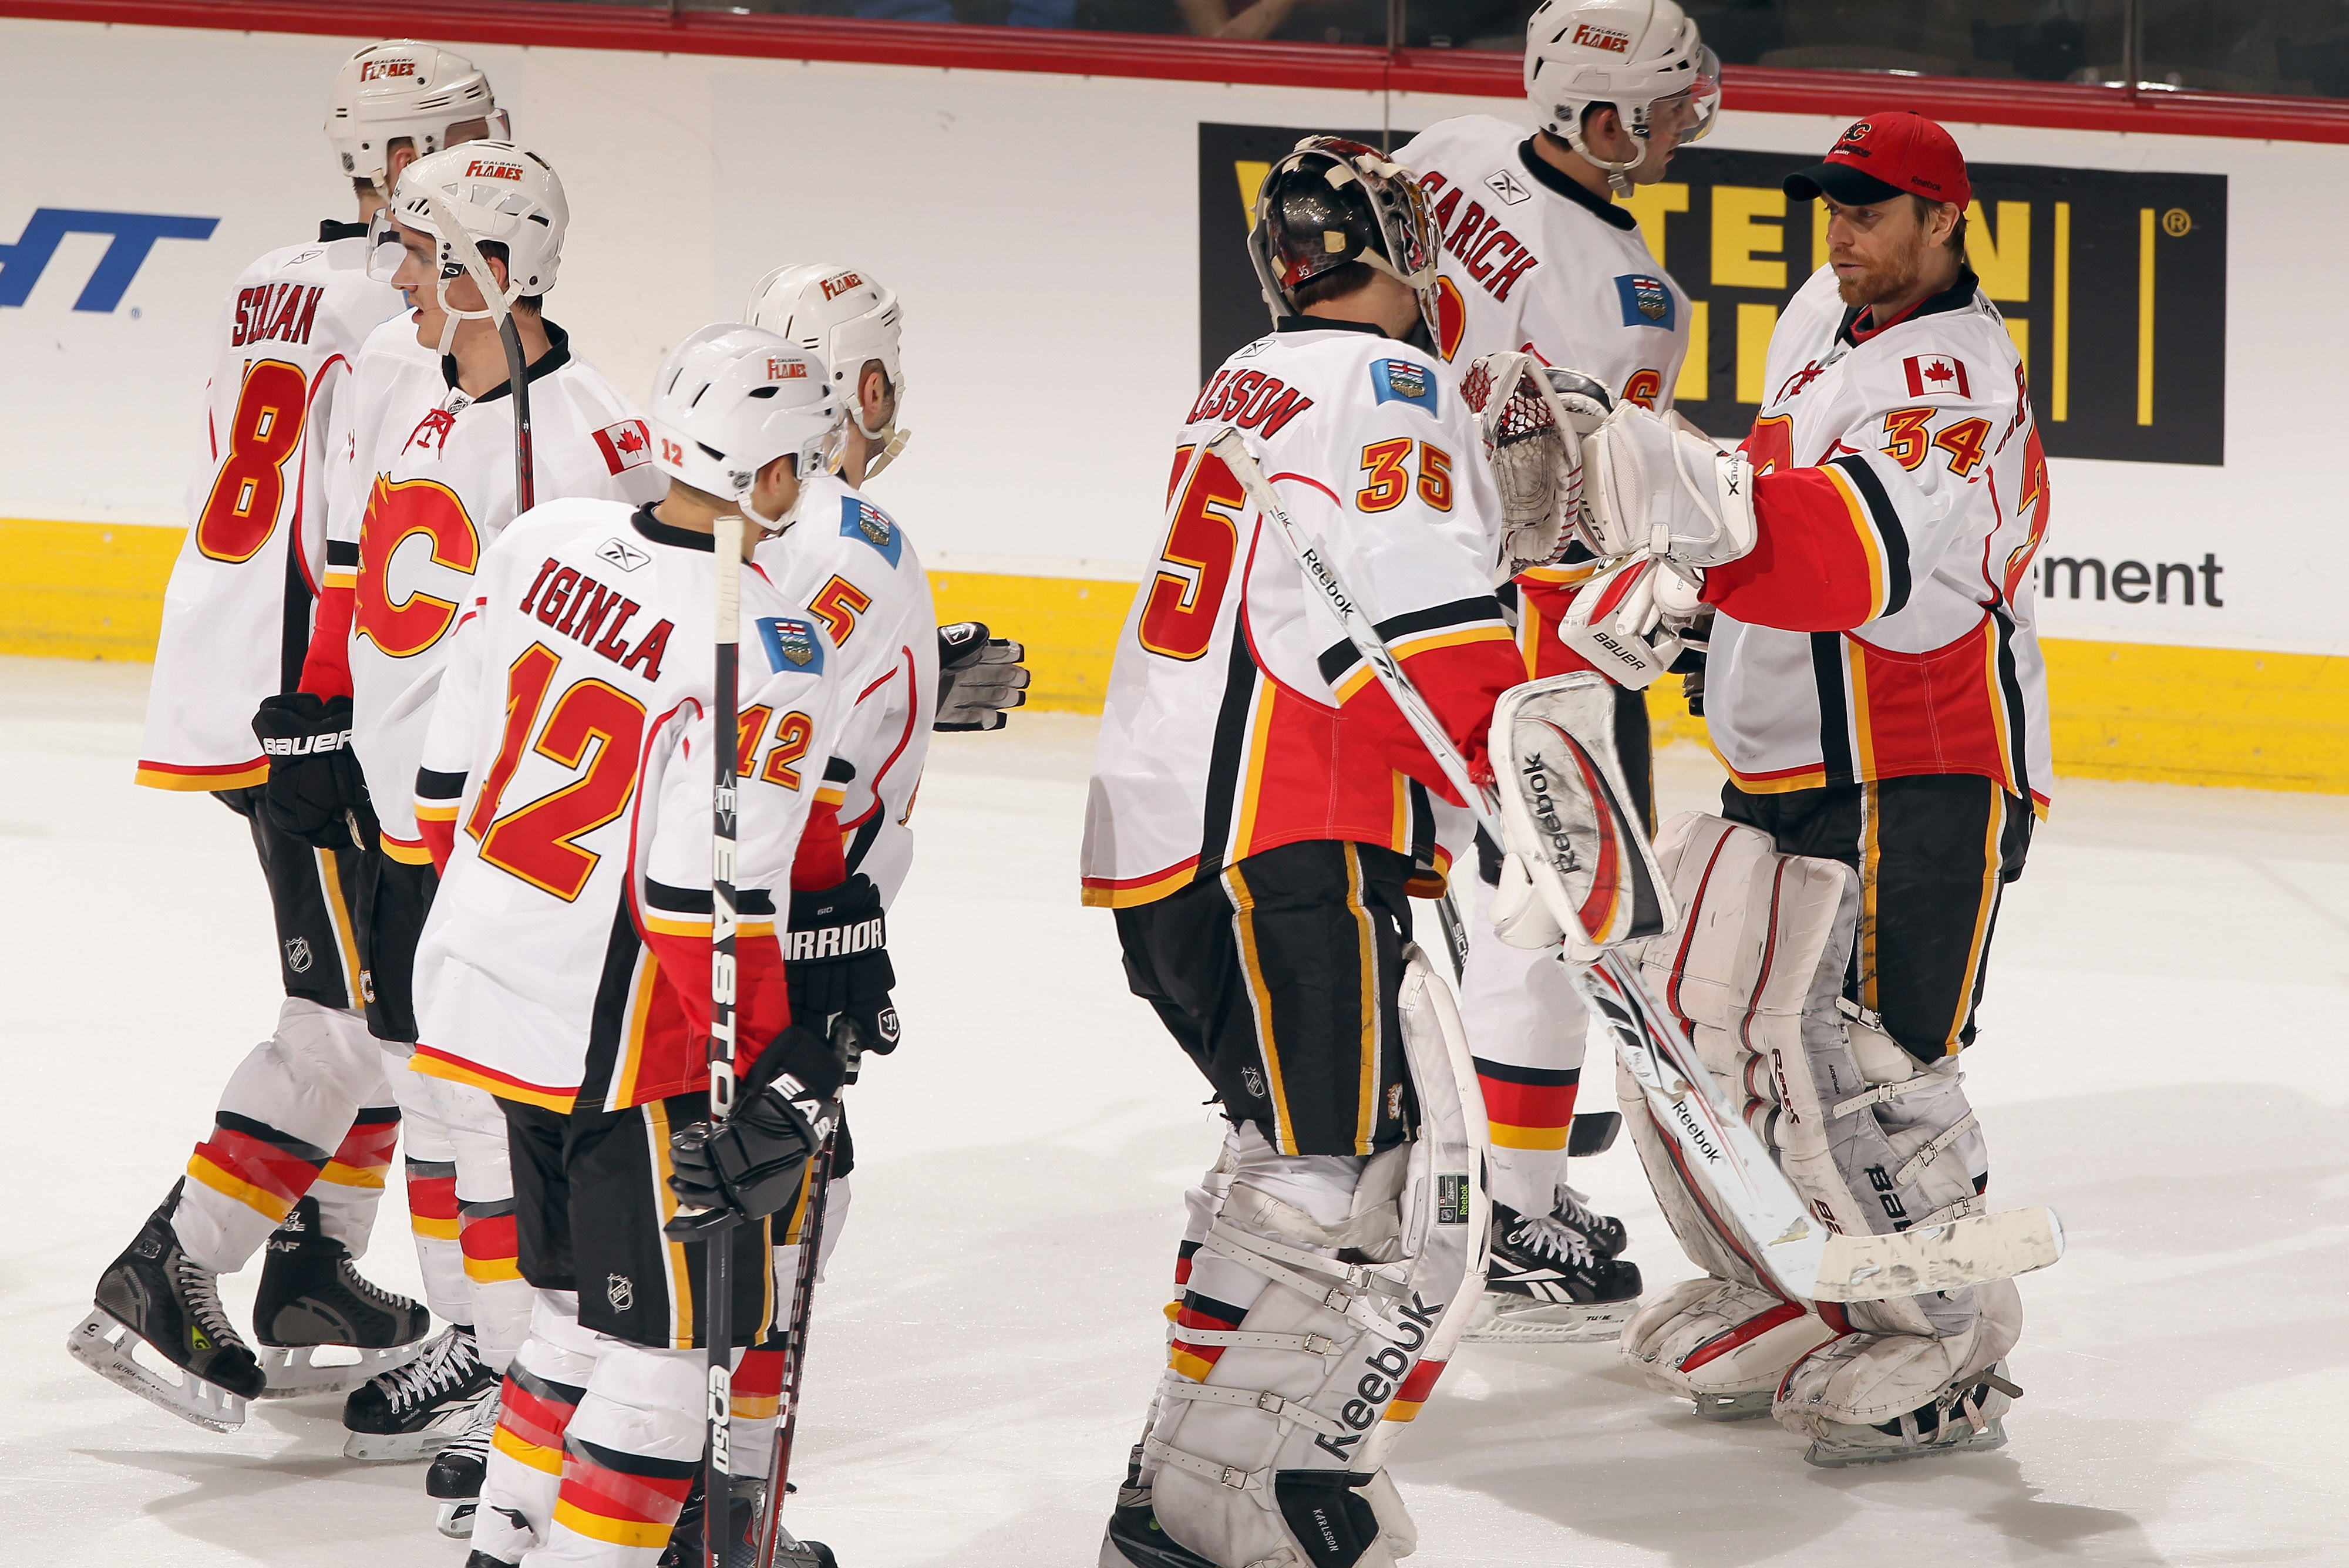 DENVER, CO - FEBRUARY 14:  The Calgary Flames celebrate their victory over the Colorado Avalanche defends at the Pepsi Center on February 14, 2011 in Denver, Colorado. The Flames defeated the Avalanche 9-1.  (Photo by Doug Pensinger/Getty Images)